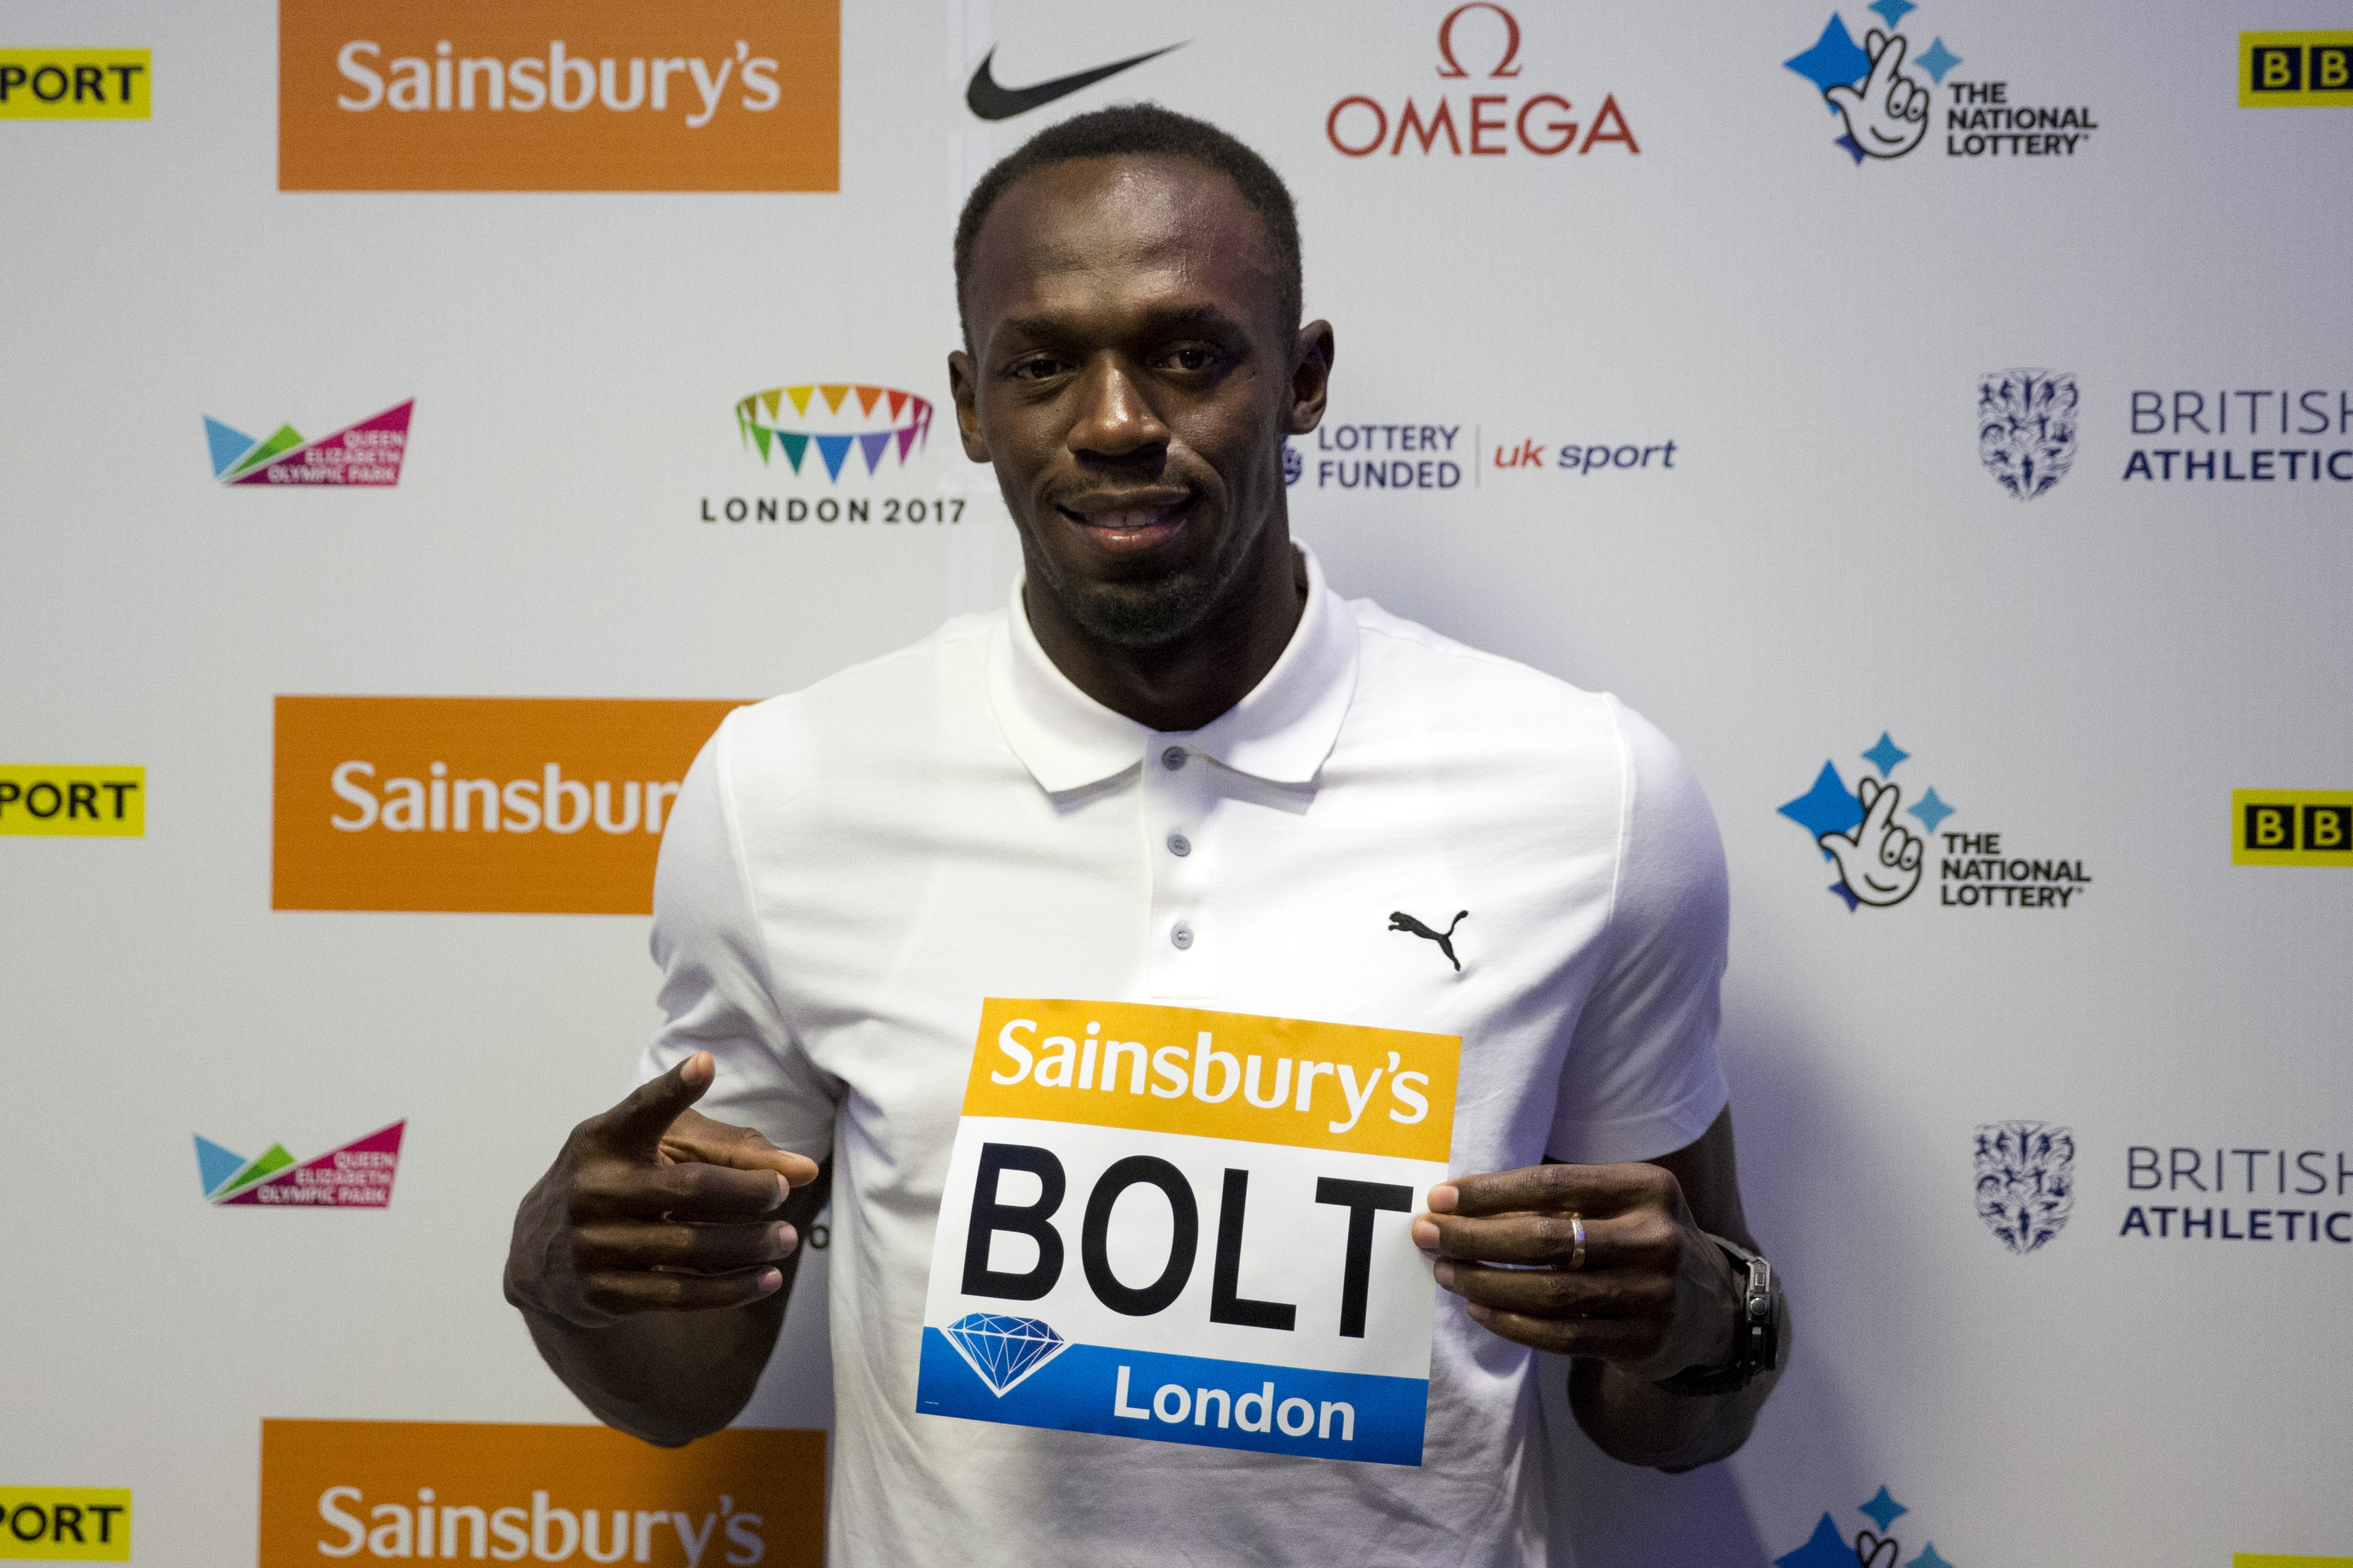 Jamaican sprinter Usain Bolt, the world record holder and Olympic champion in the 100 metres and 200 metres, poses for photographers at the end of a press conference in a hotel, ahead of competing in the Diamond League athletics meeting at the Olympic Stadium in London, Thursday, July 23, 2015.  Photo: AP